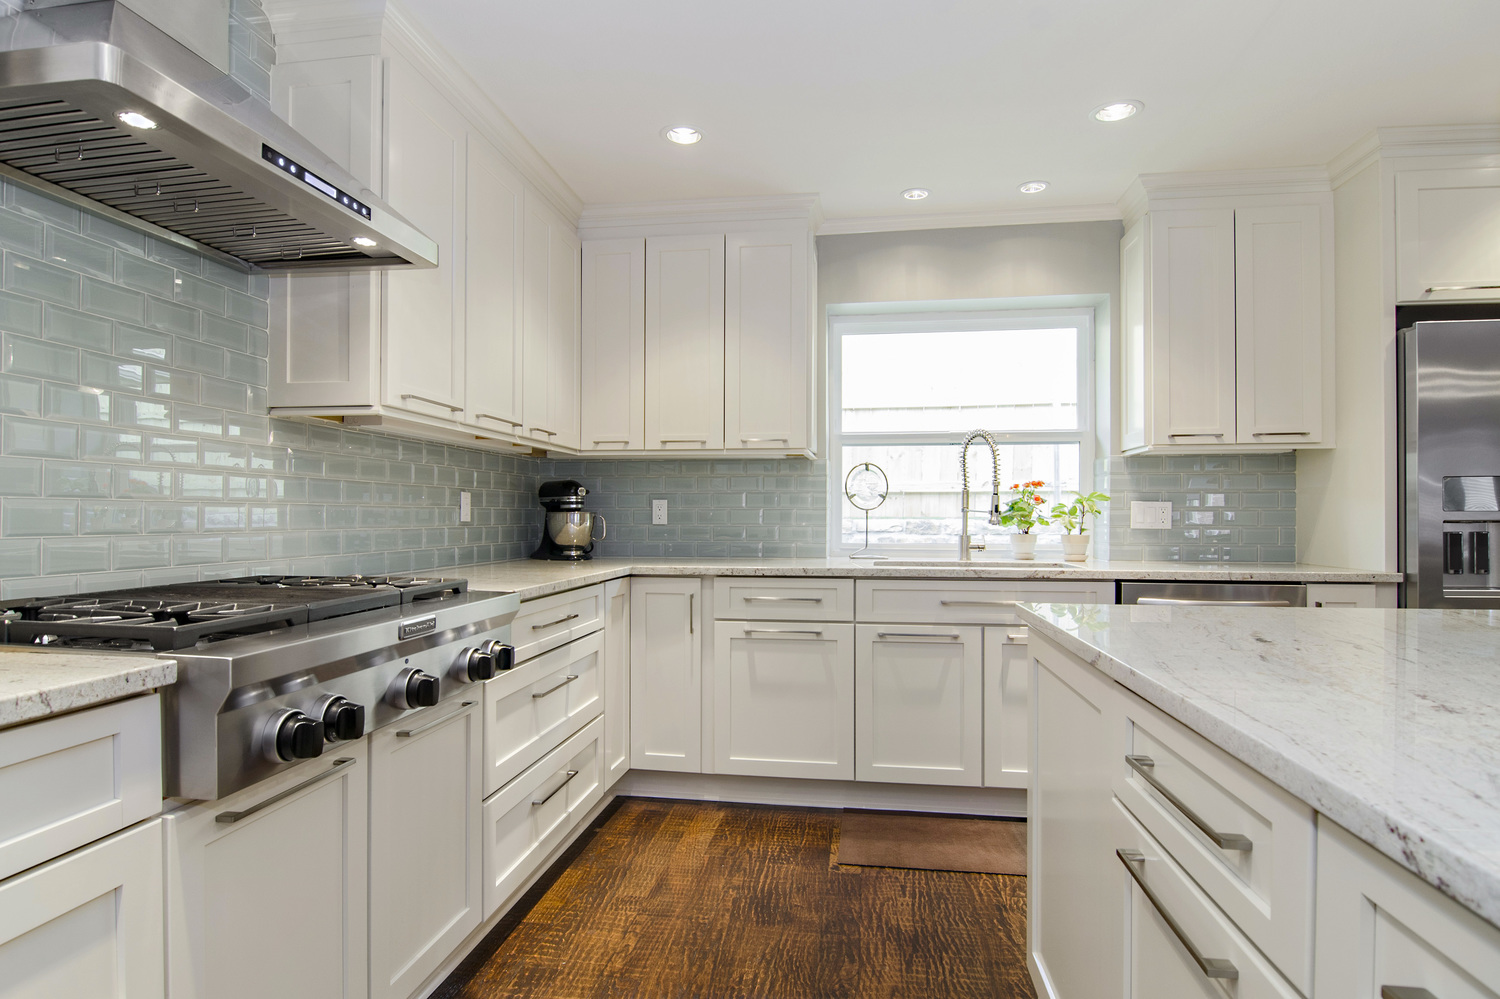 River white granite white cabinets backsplash ideas for White kitchen cabinets what color backsplash